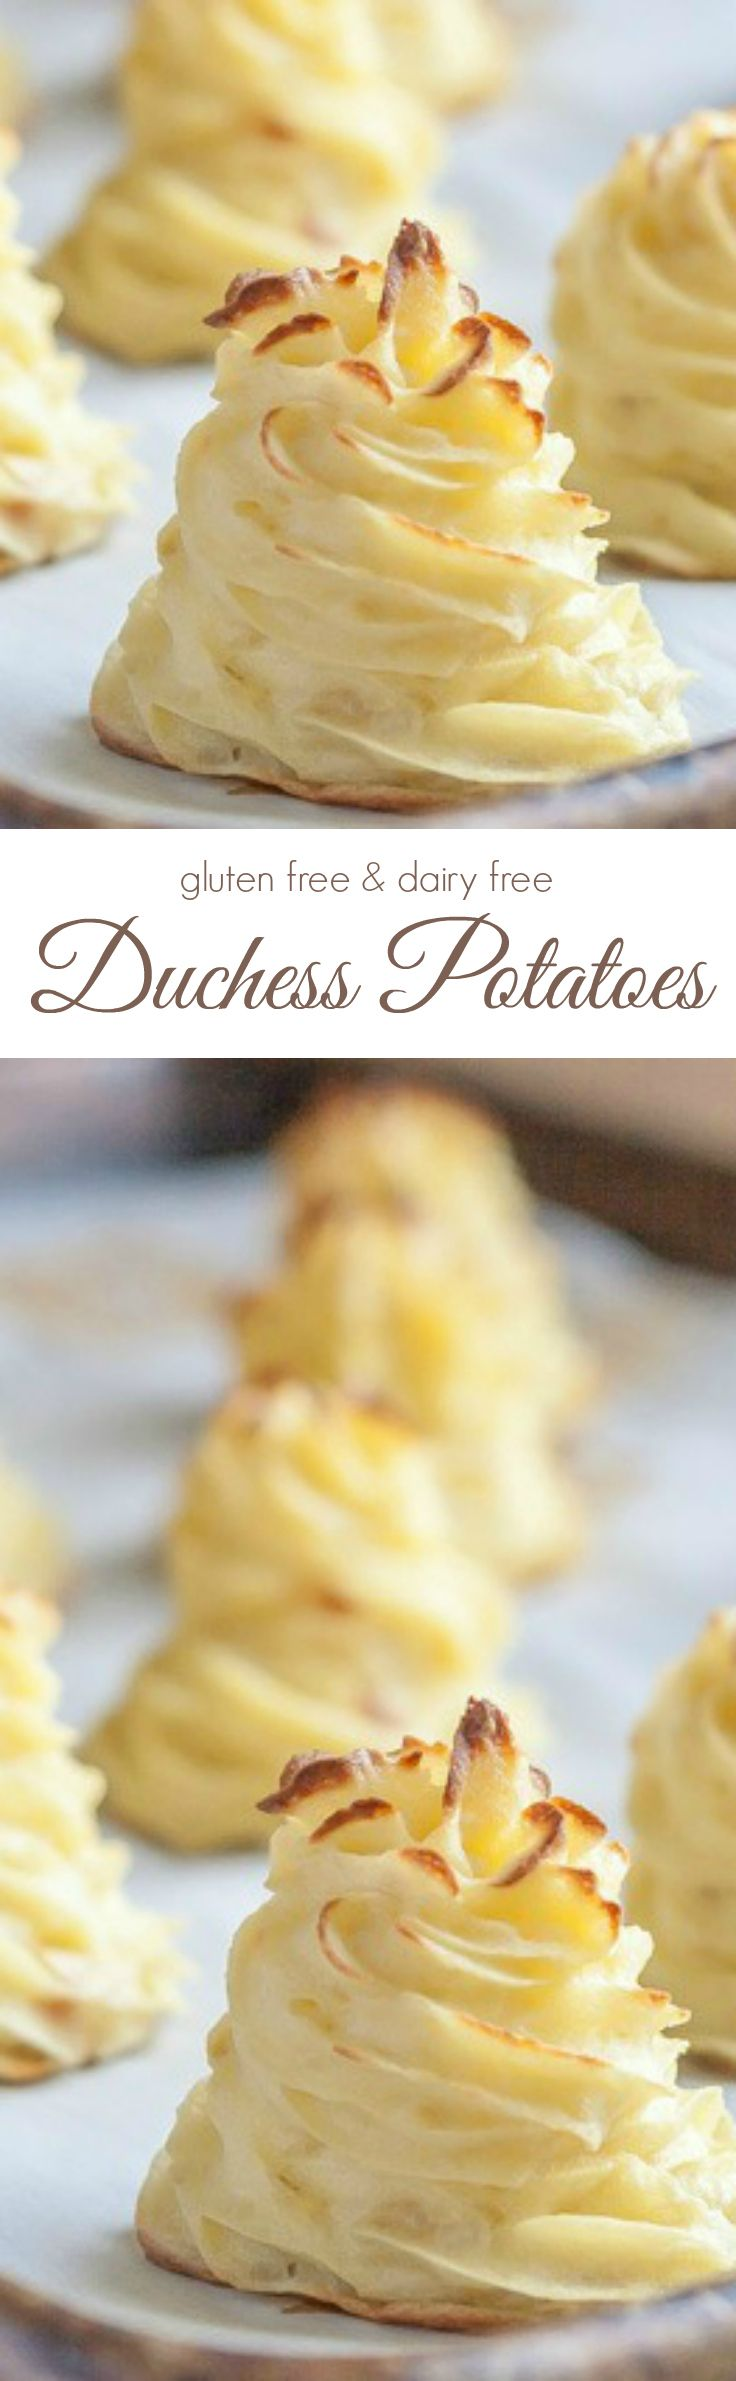 Absolutely gorgeous Duchess Potatoes that are so unbelievably easy to make! | Gluten Free | Dairy Free | Paleo |